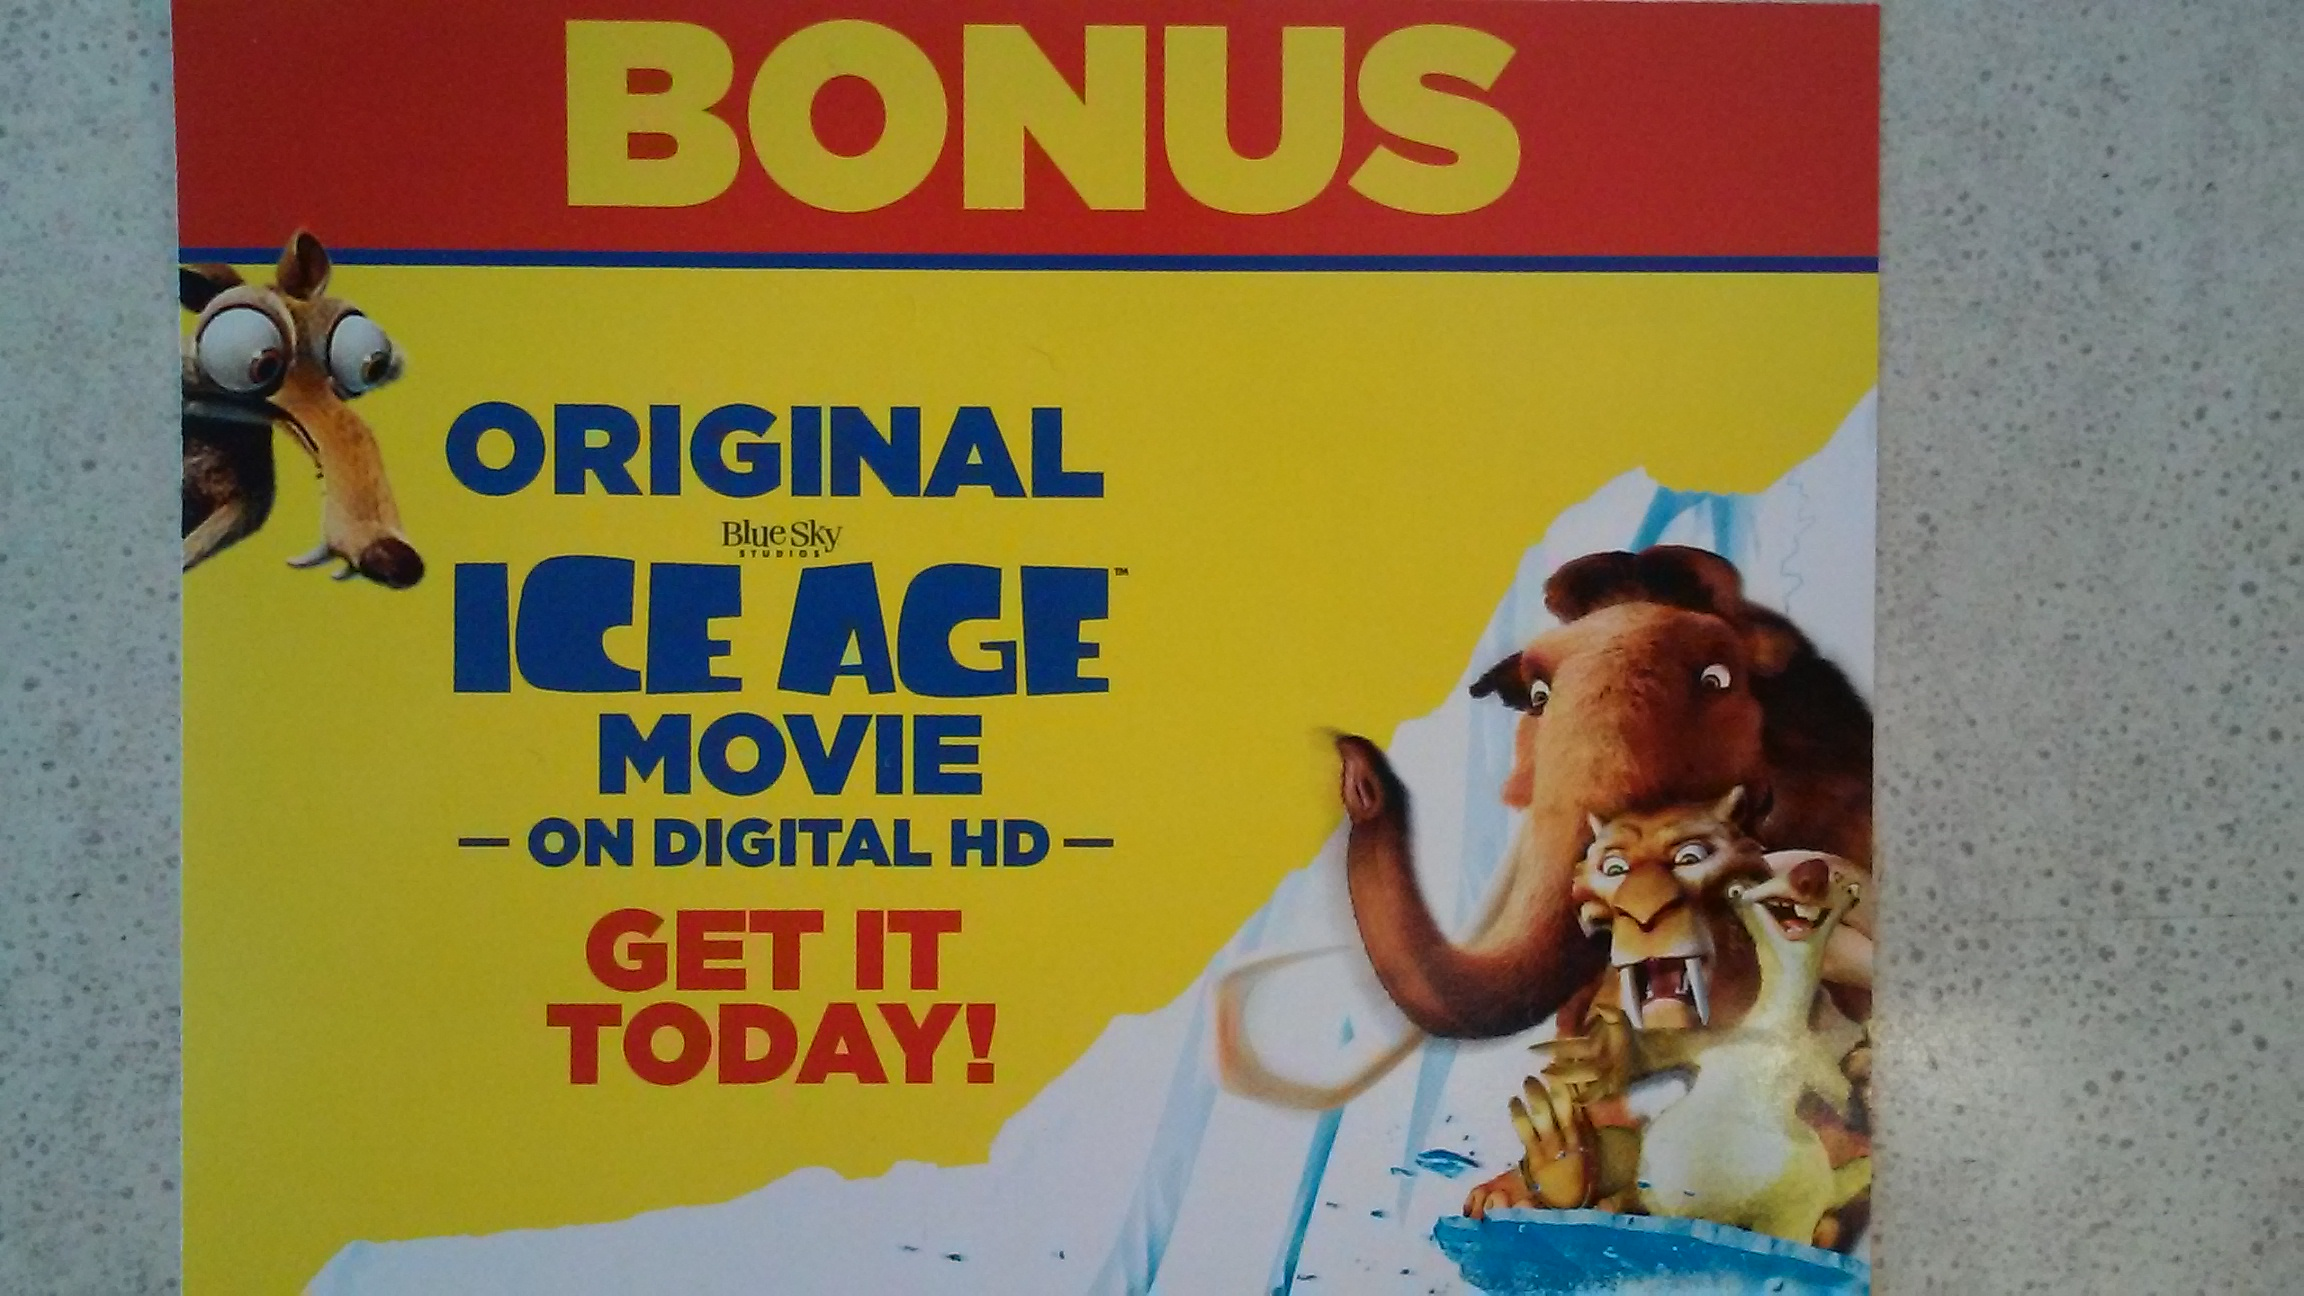 Ice Age Original Movie Bonus-HD